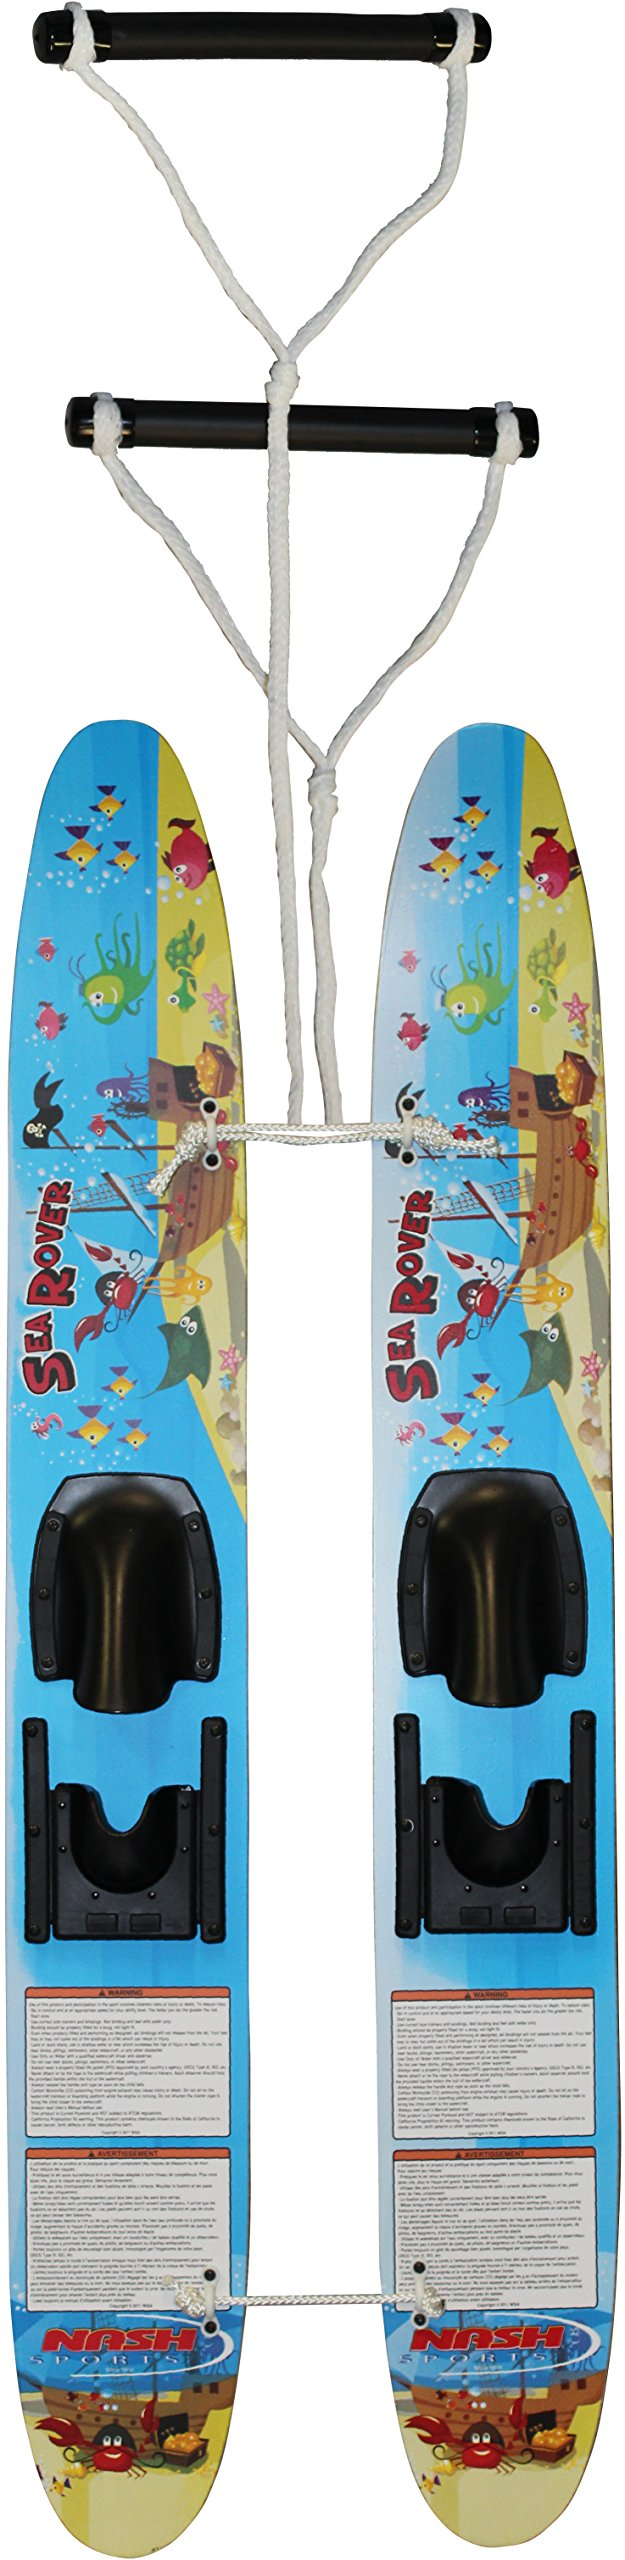 Hydroslide Kid's Trainer Water Skis, Blue, 48-Inch by Hydro Slide